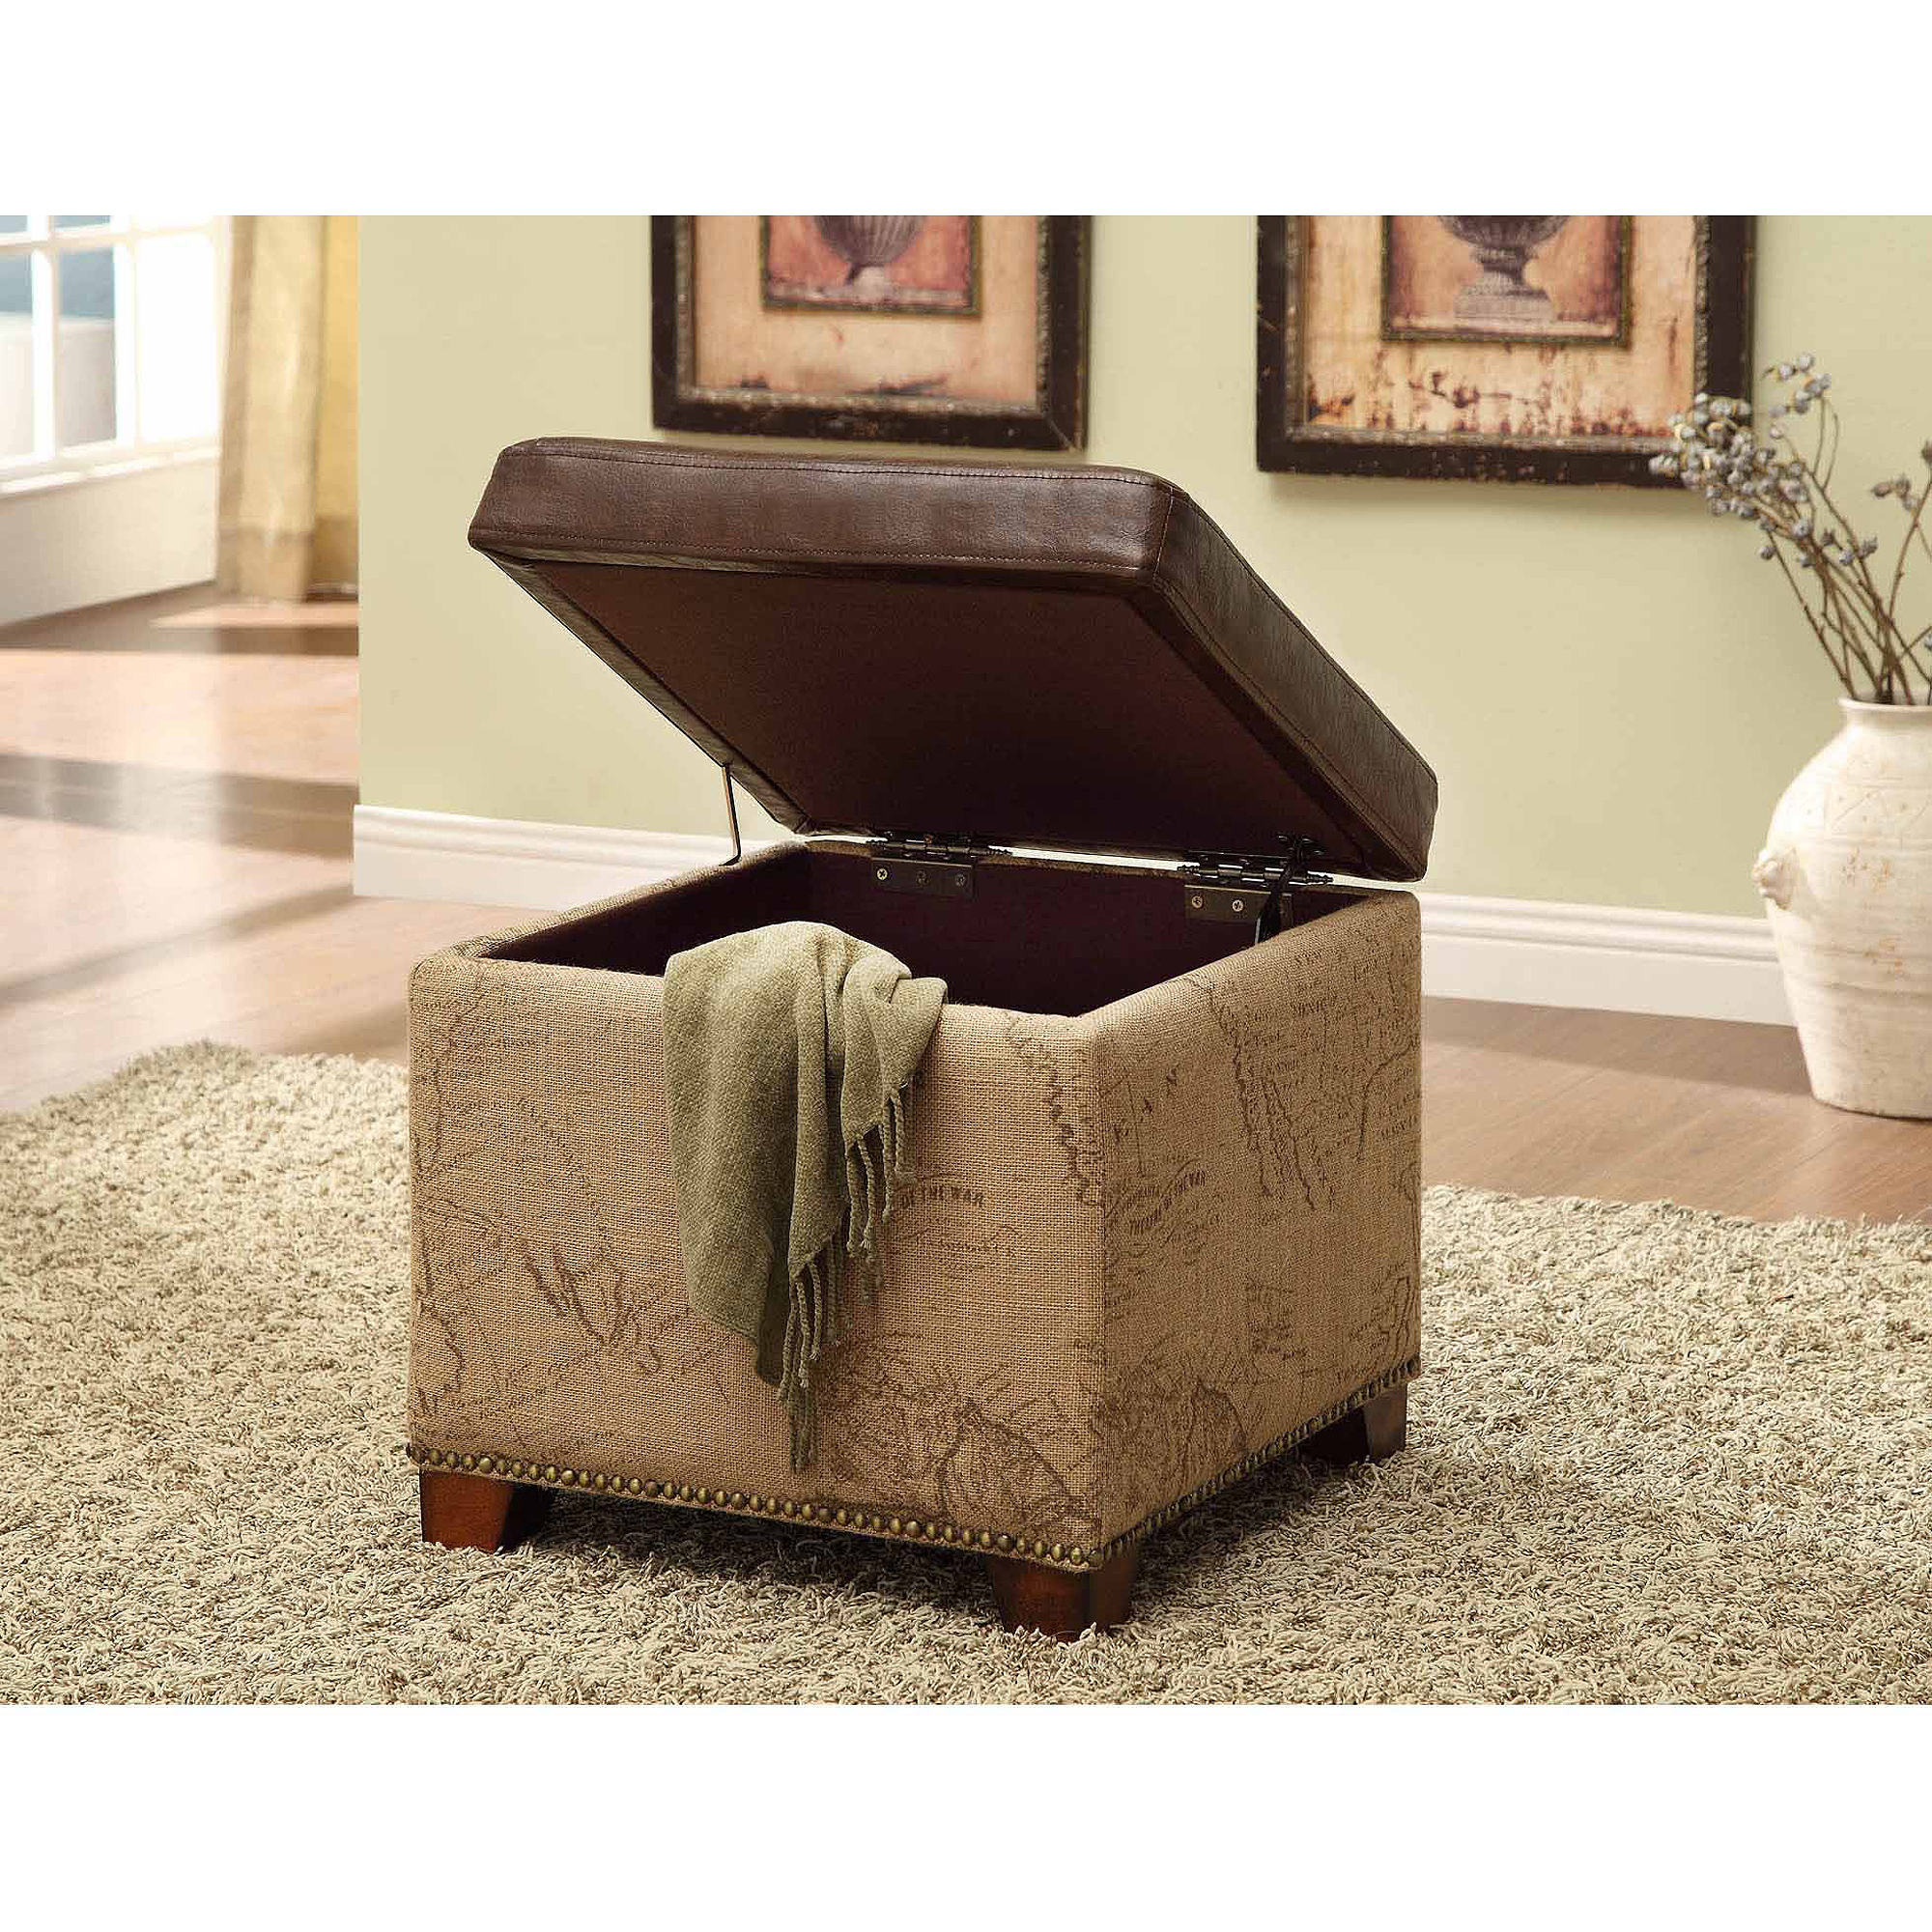 Antique Brown Storage Ottoman with Natural Jute and Accent Nails